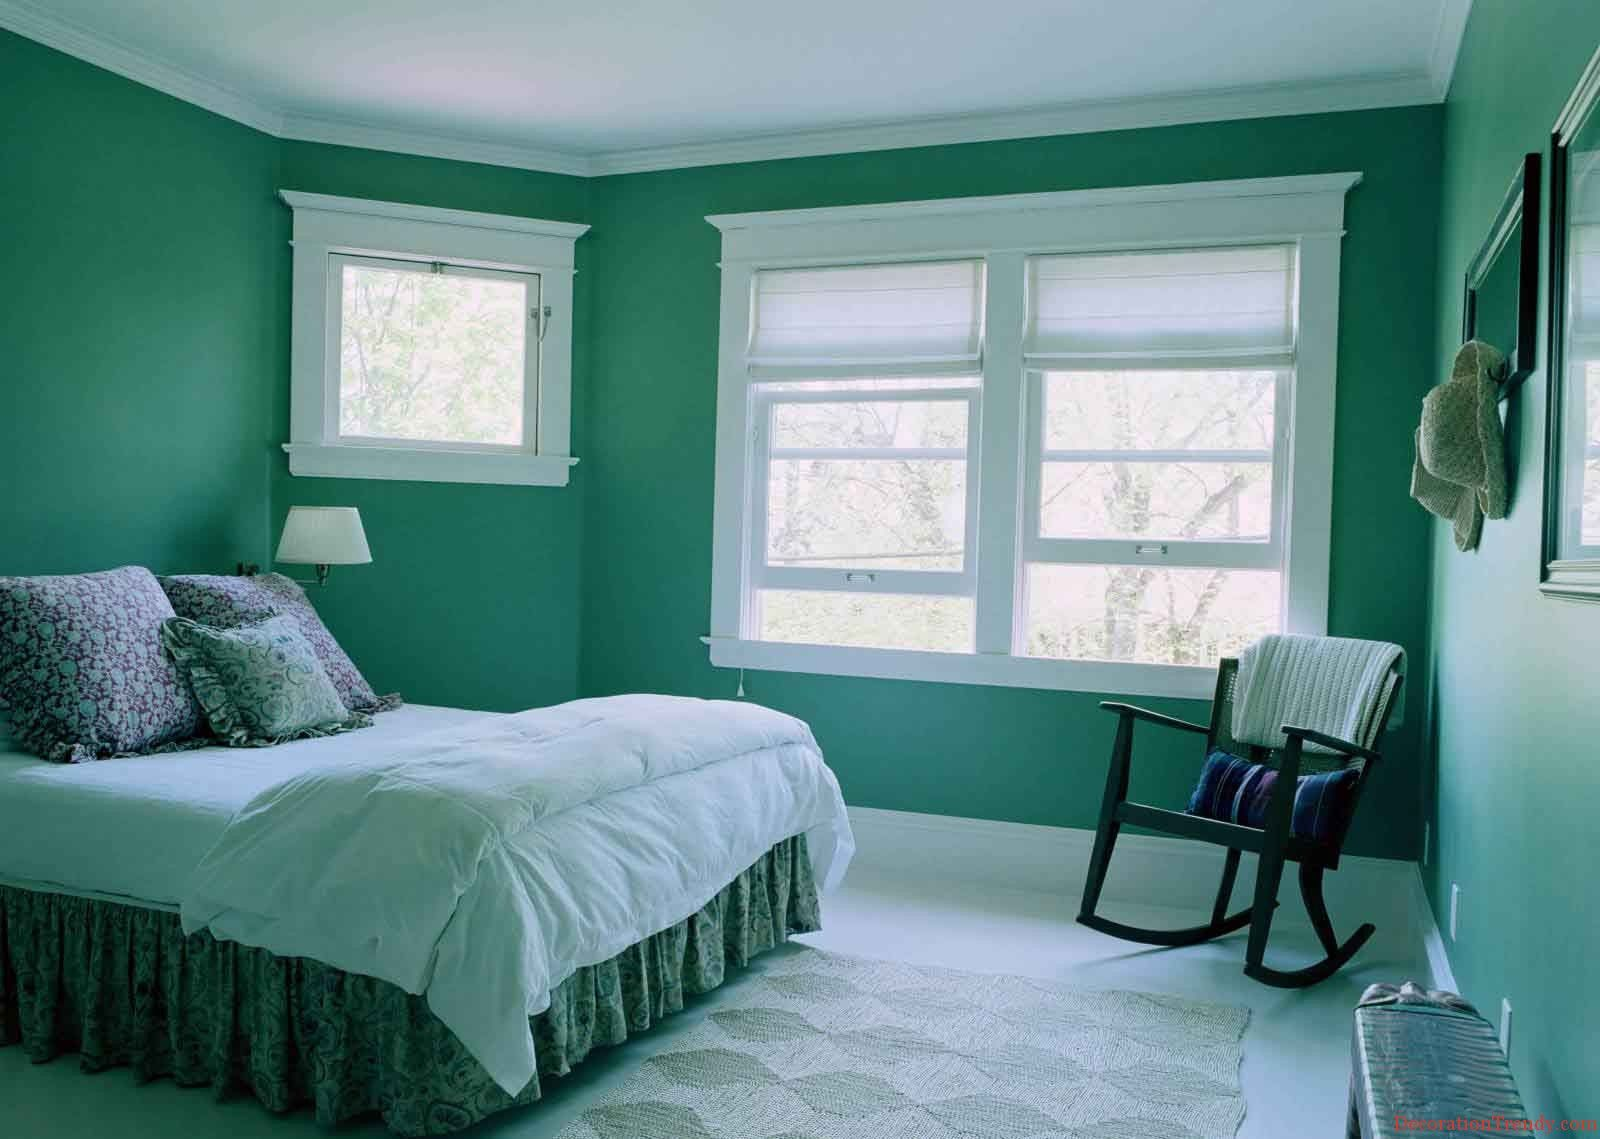 Blue bedroom color design - Wall Color Combination Design Ideas And Photos Get Creative Wall Painting Ideas Designs For